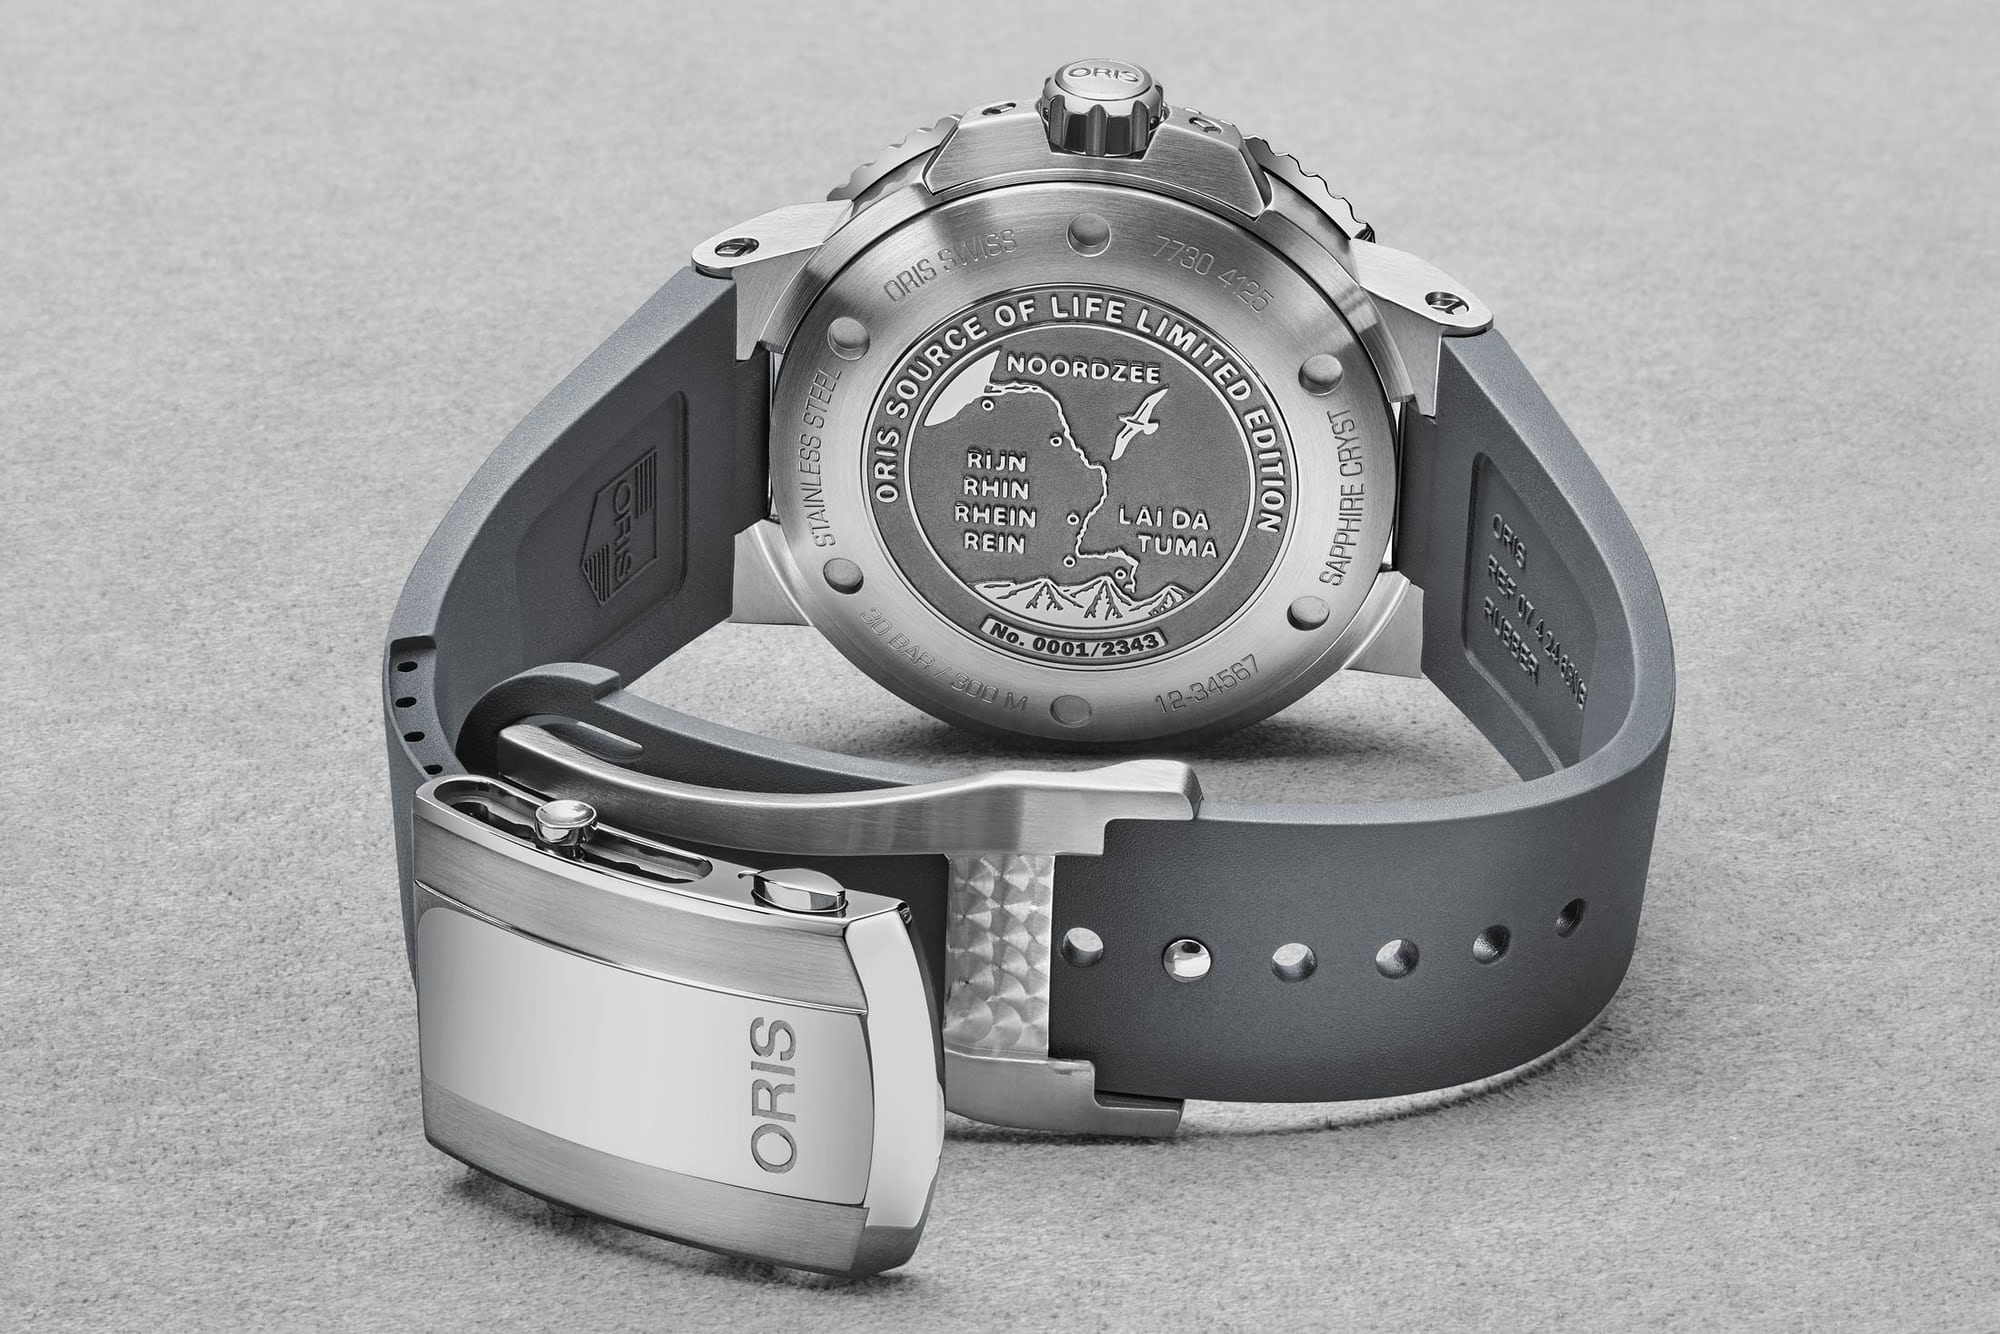 Introducing: The Oris 'Source Of Life' Limited Edition Introducing: The Oris 'Source Of Life' Limited Edition oris 1